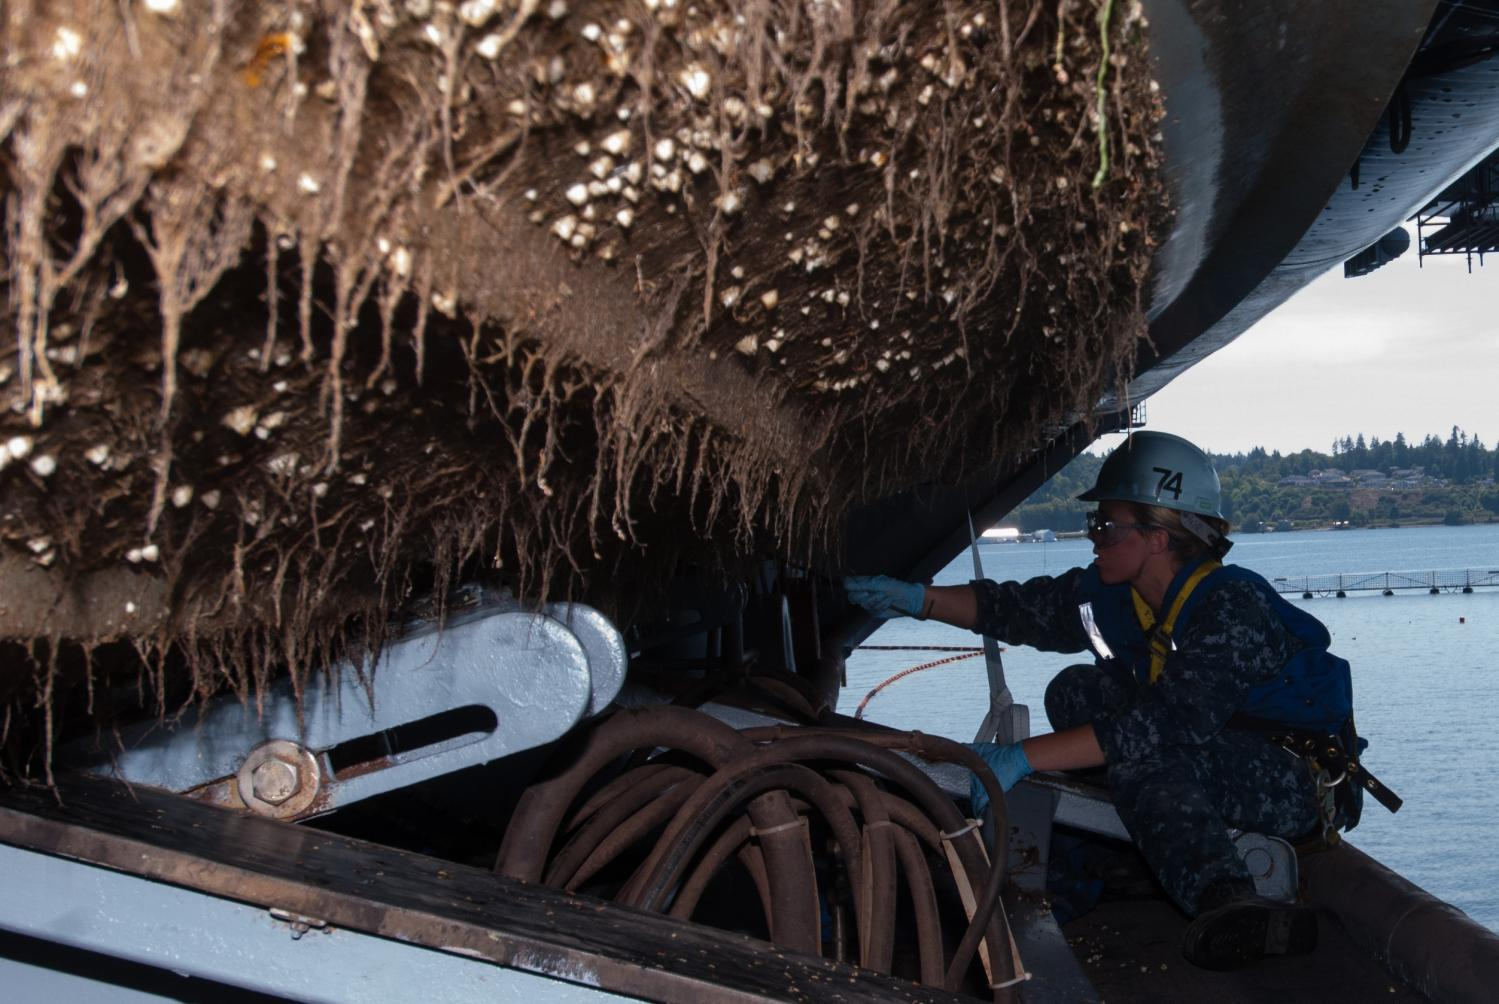 Barnacle busting: Research targets ship biofouling